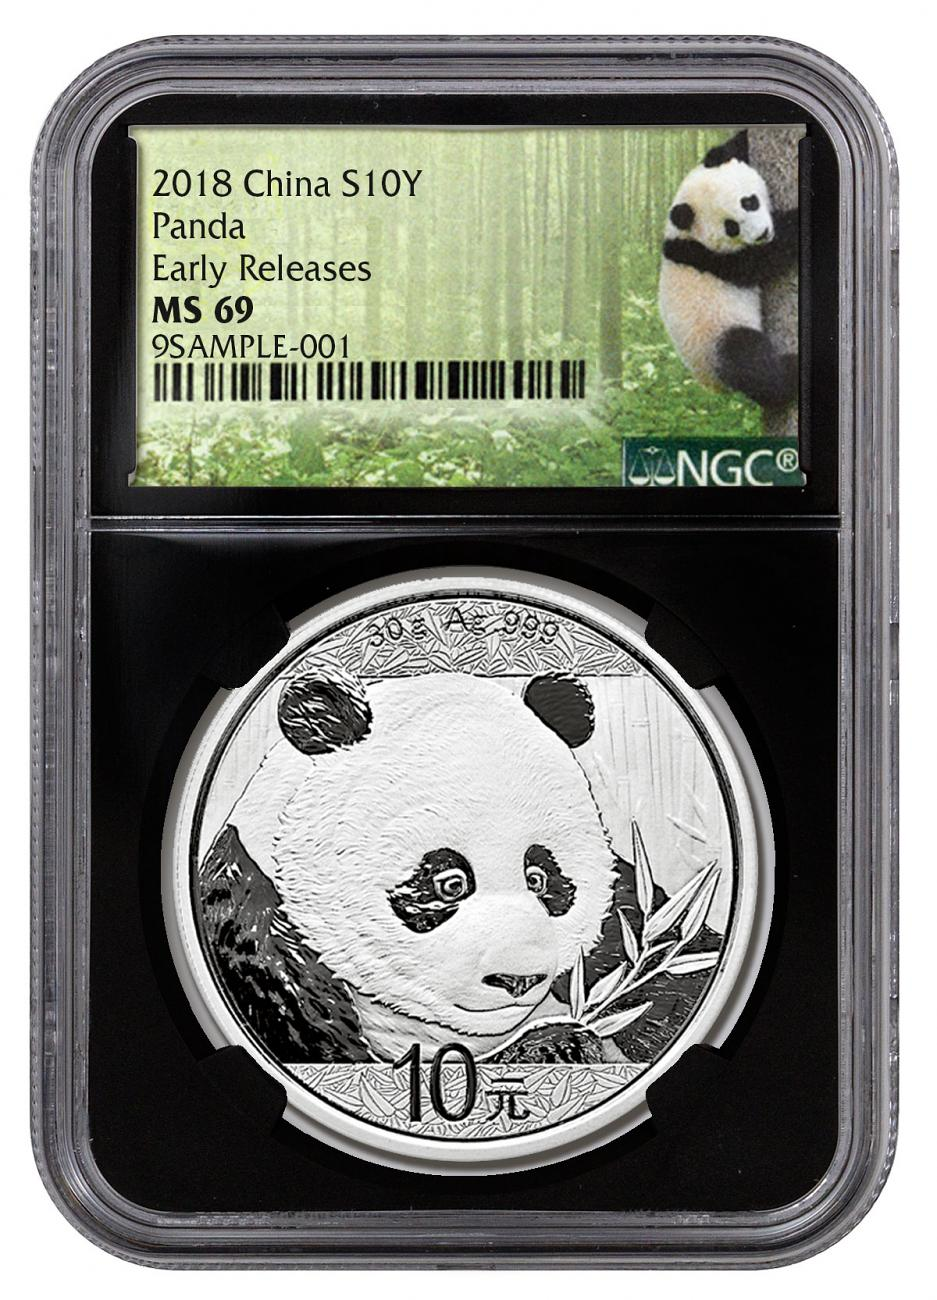 2018 China 30 g Silver Panda - 35th Anniversary ¥10 Coin NGC MS69 ER Black Core Holder Exclusive Panda Label